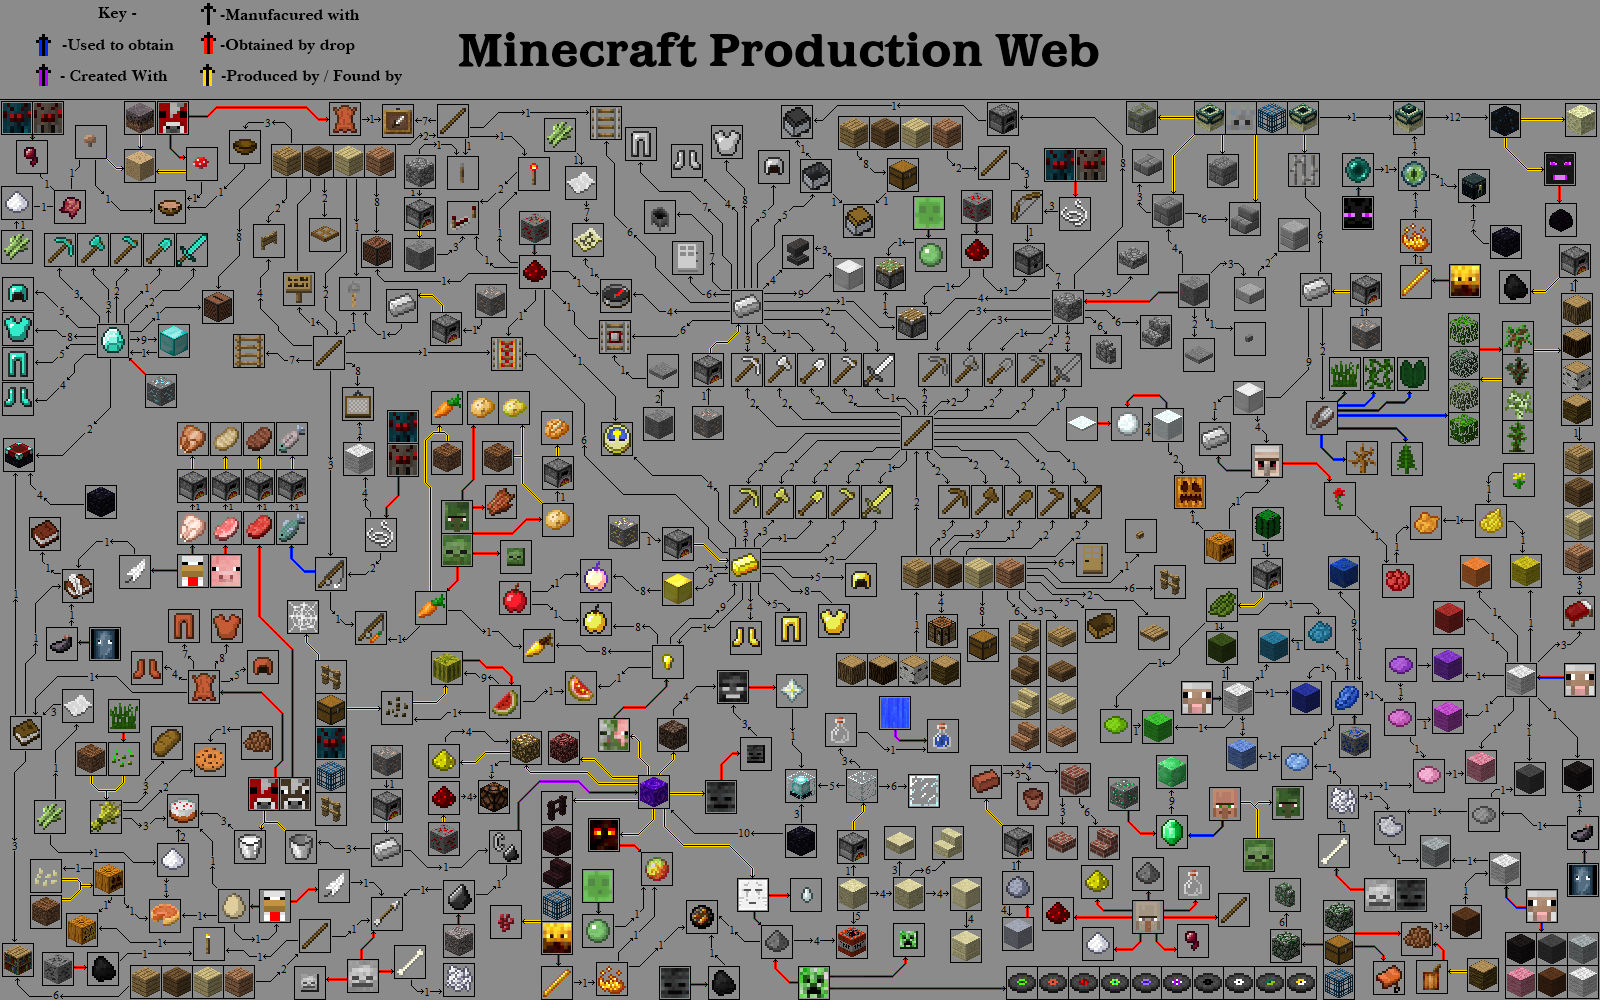 minecraft production web guide  a complete guide to minecraft  - minecraft production web guide  a complete guide to minecraft items surviving minecraft minecraft adventures